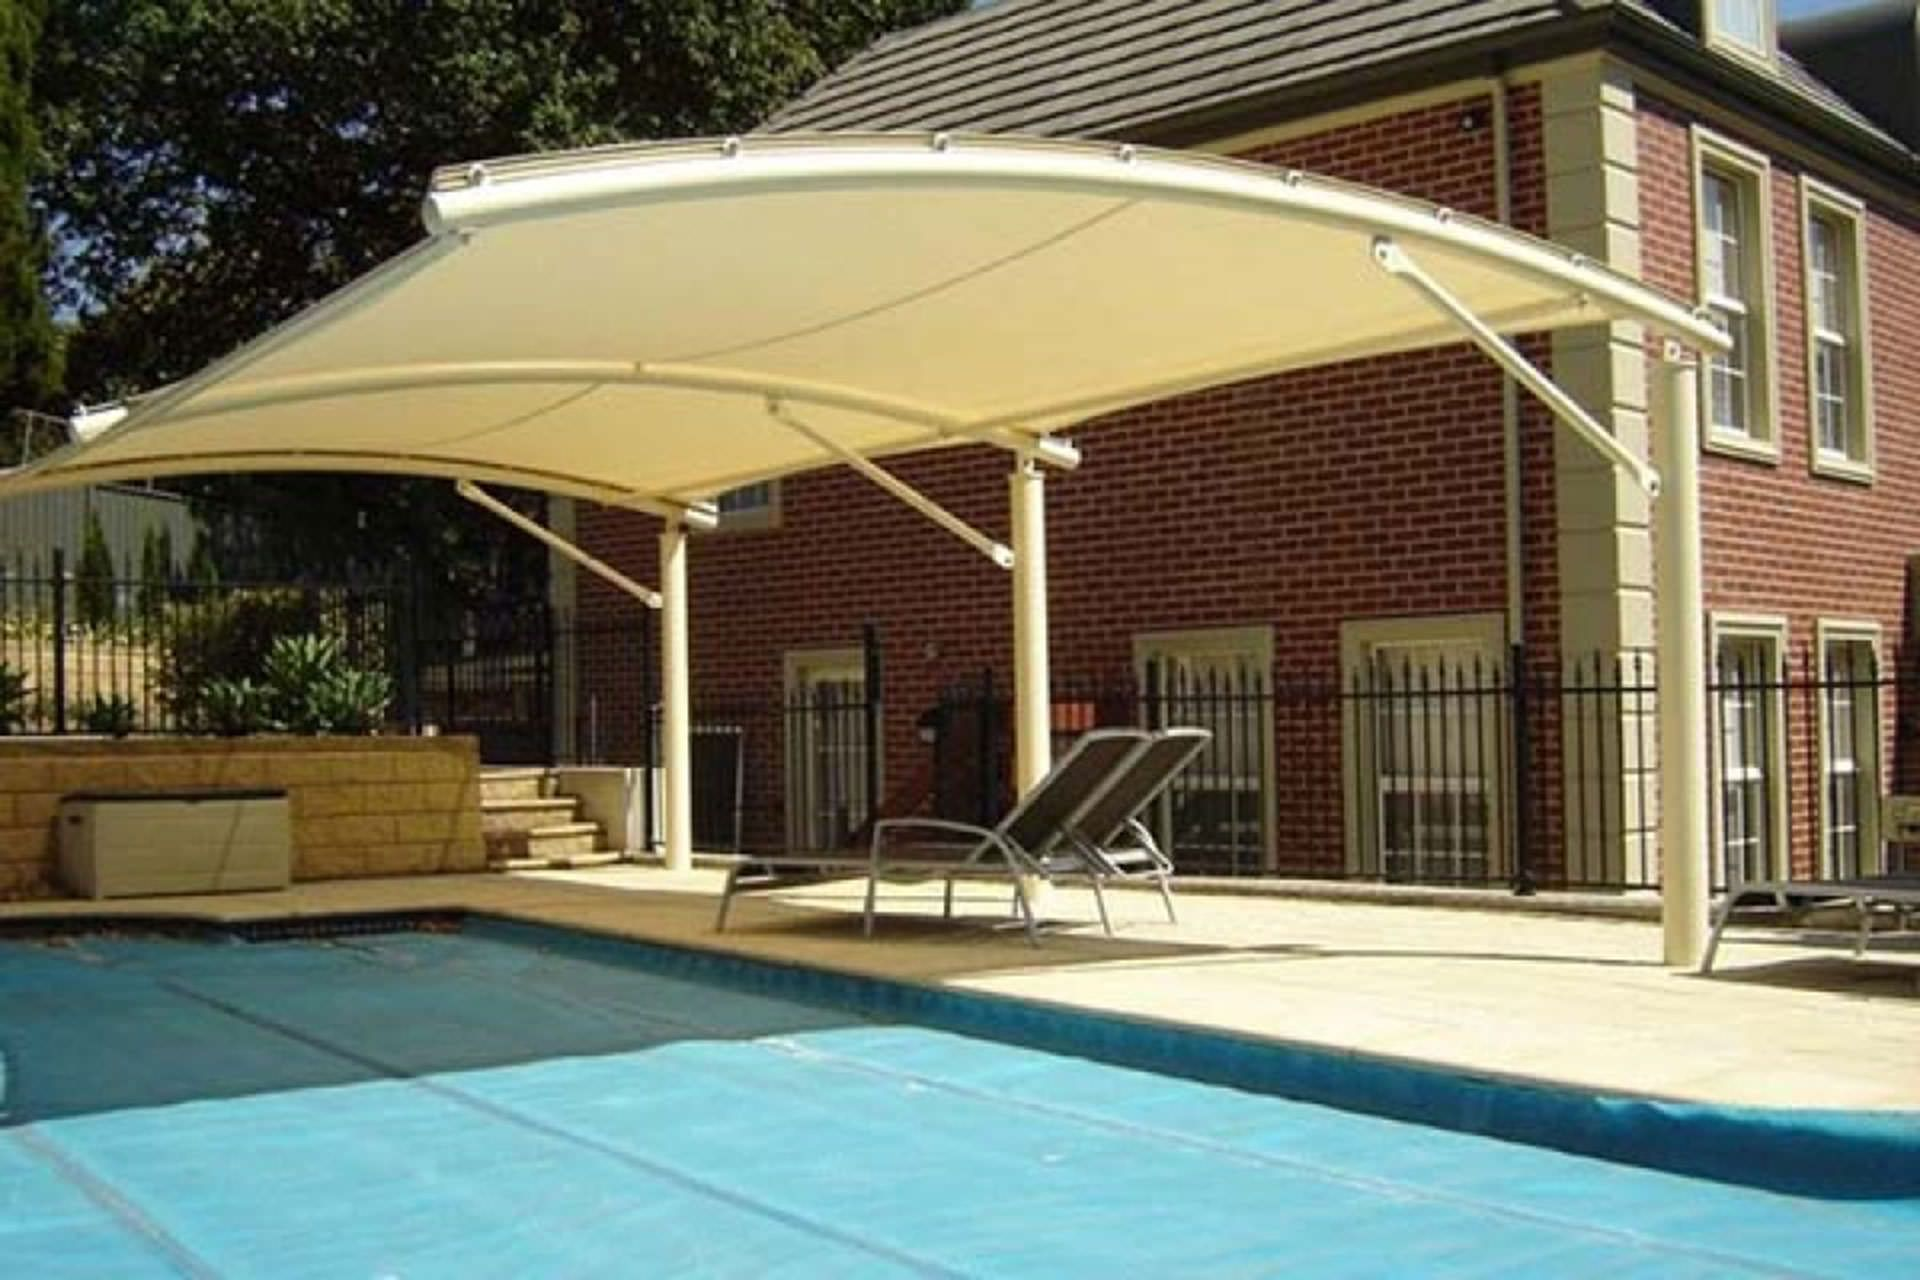 Pool Shade Ideas Cantilevered